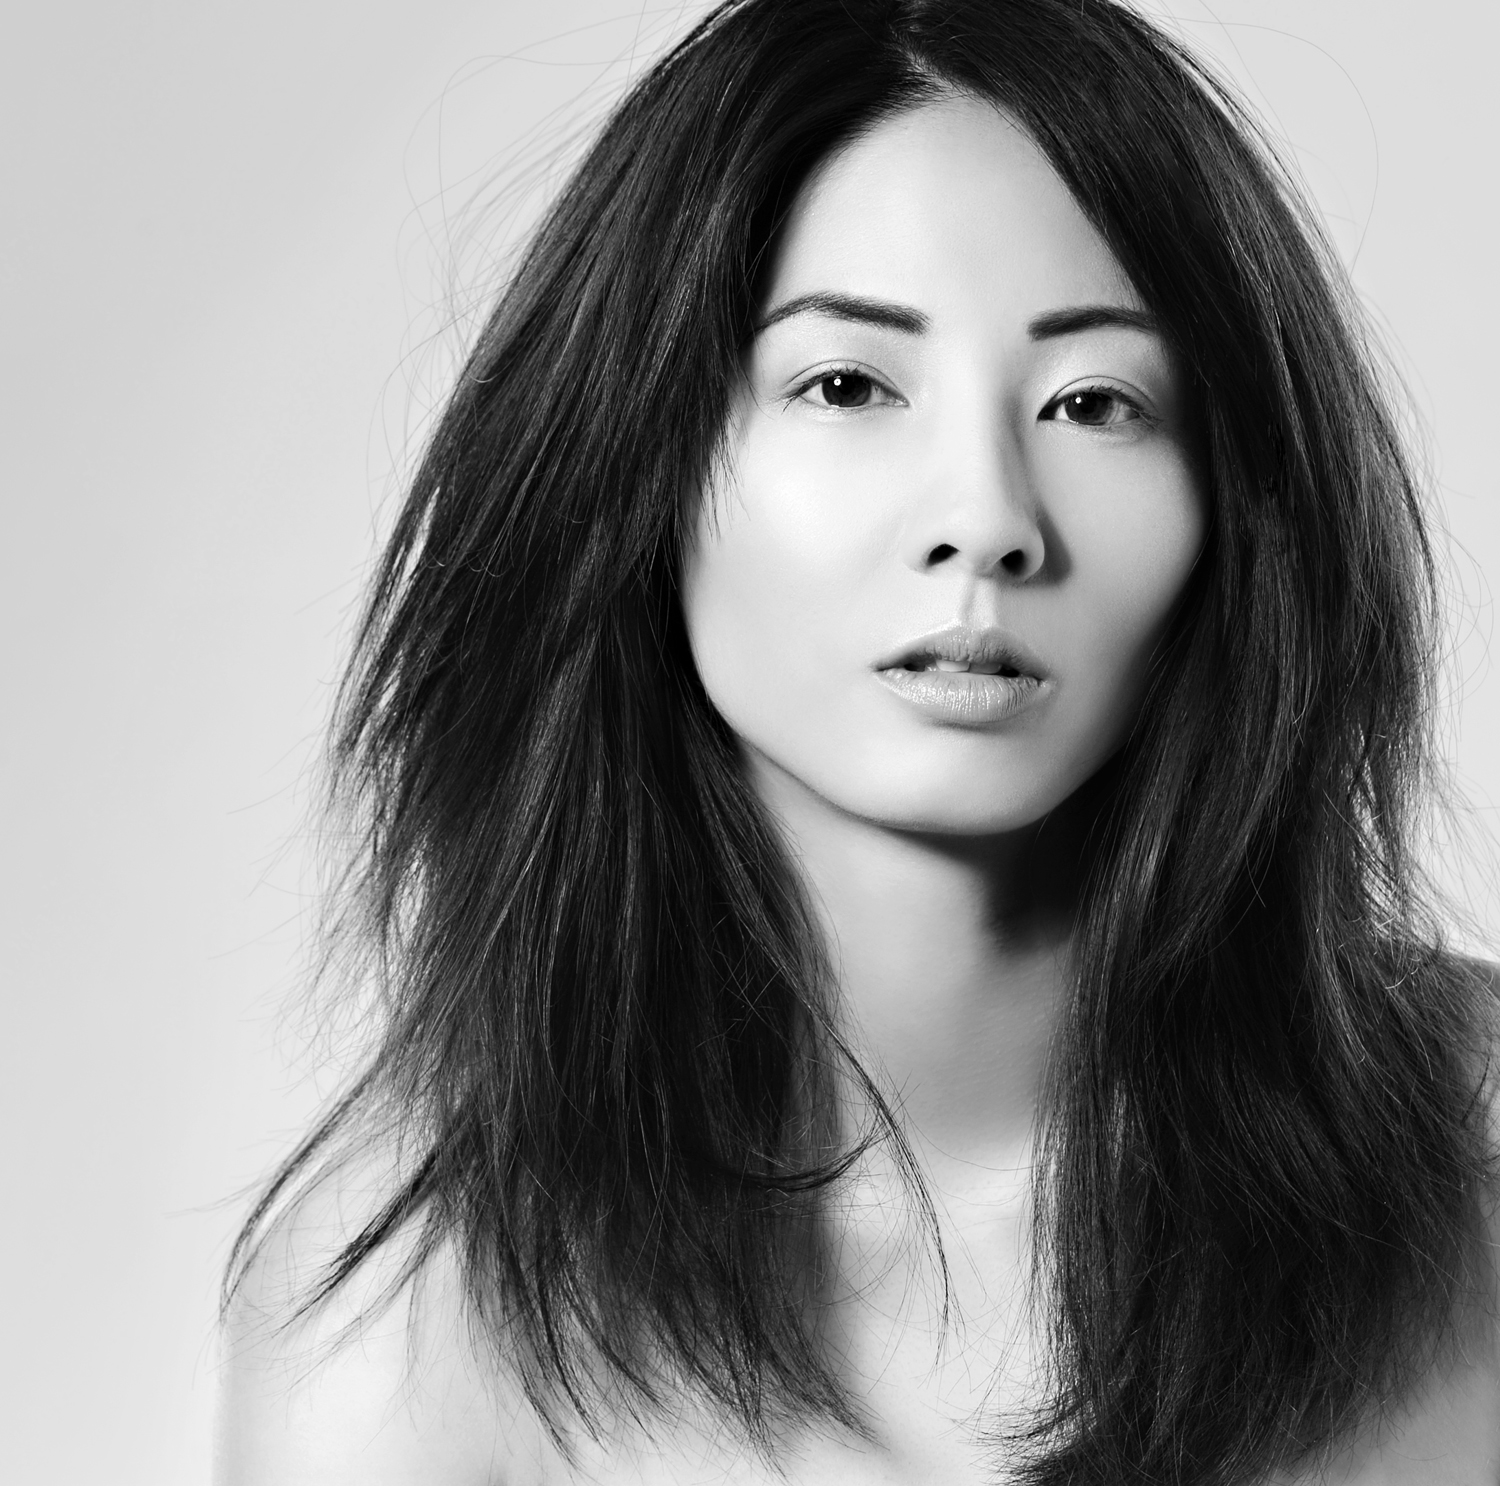 JING LUSI | ACTOR